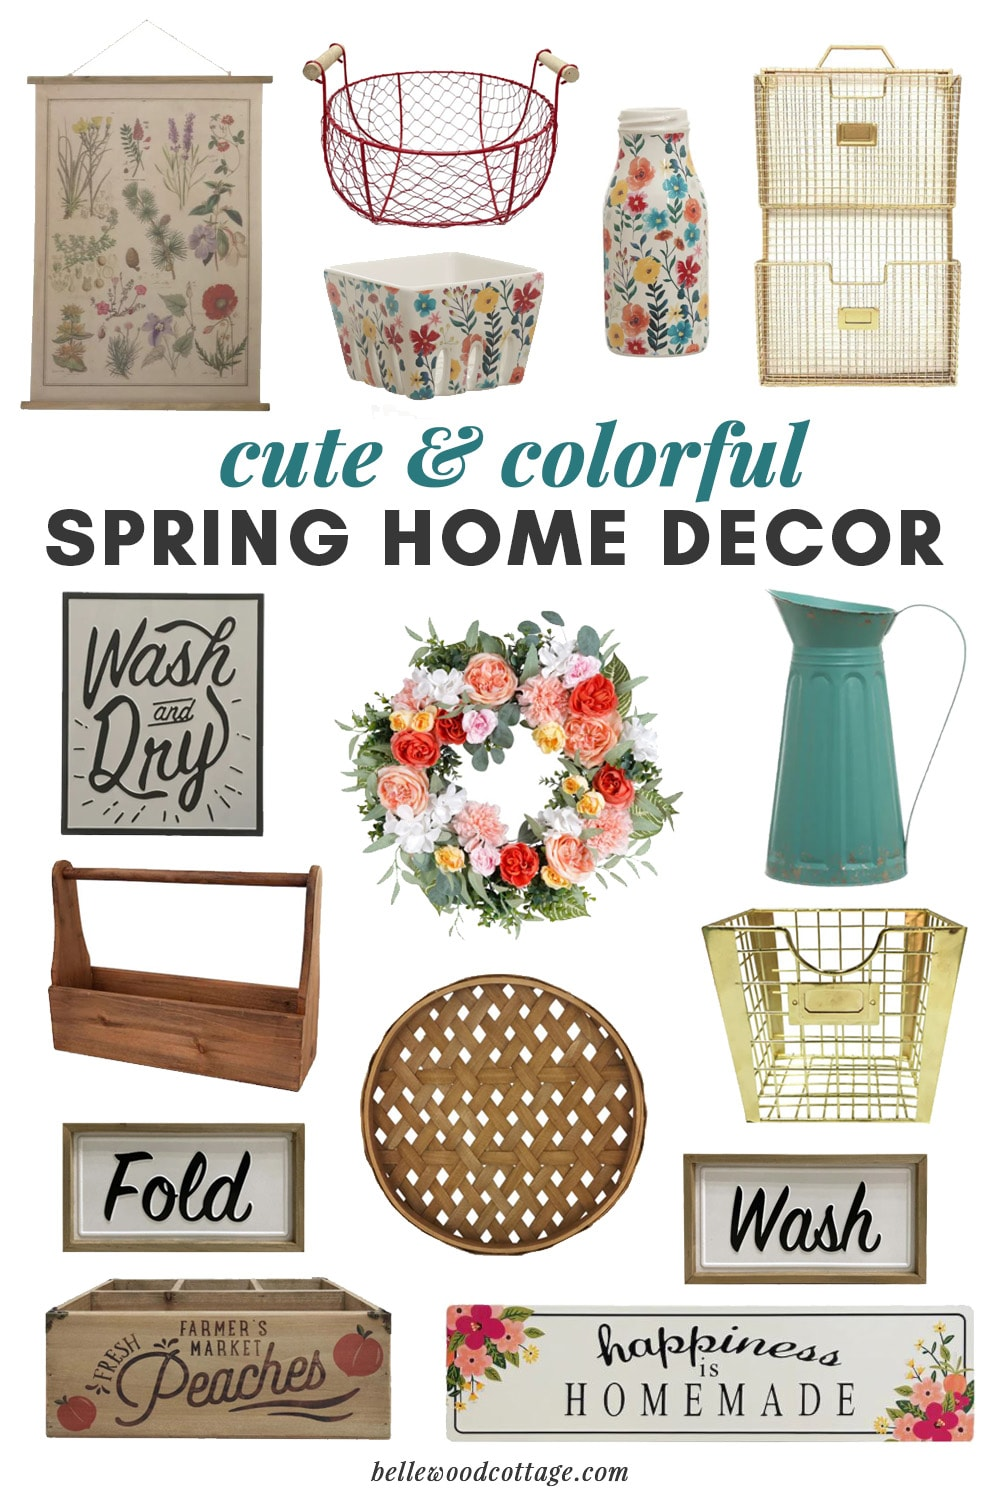 A collage of colorful spring home décor from Michaels.